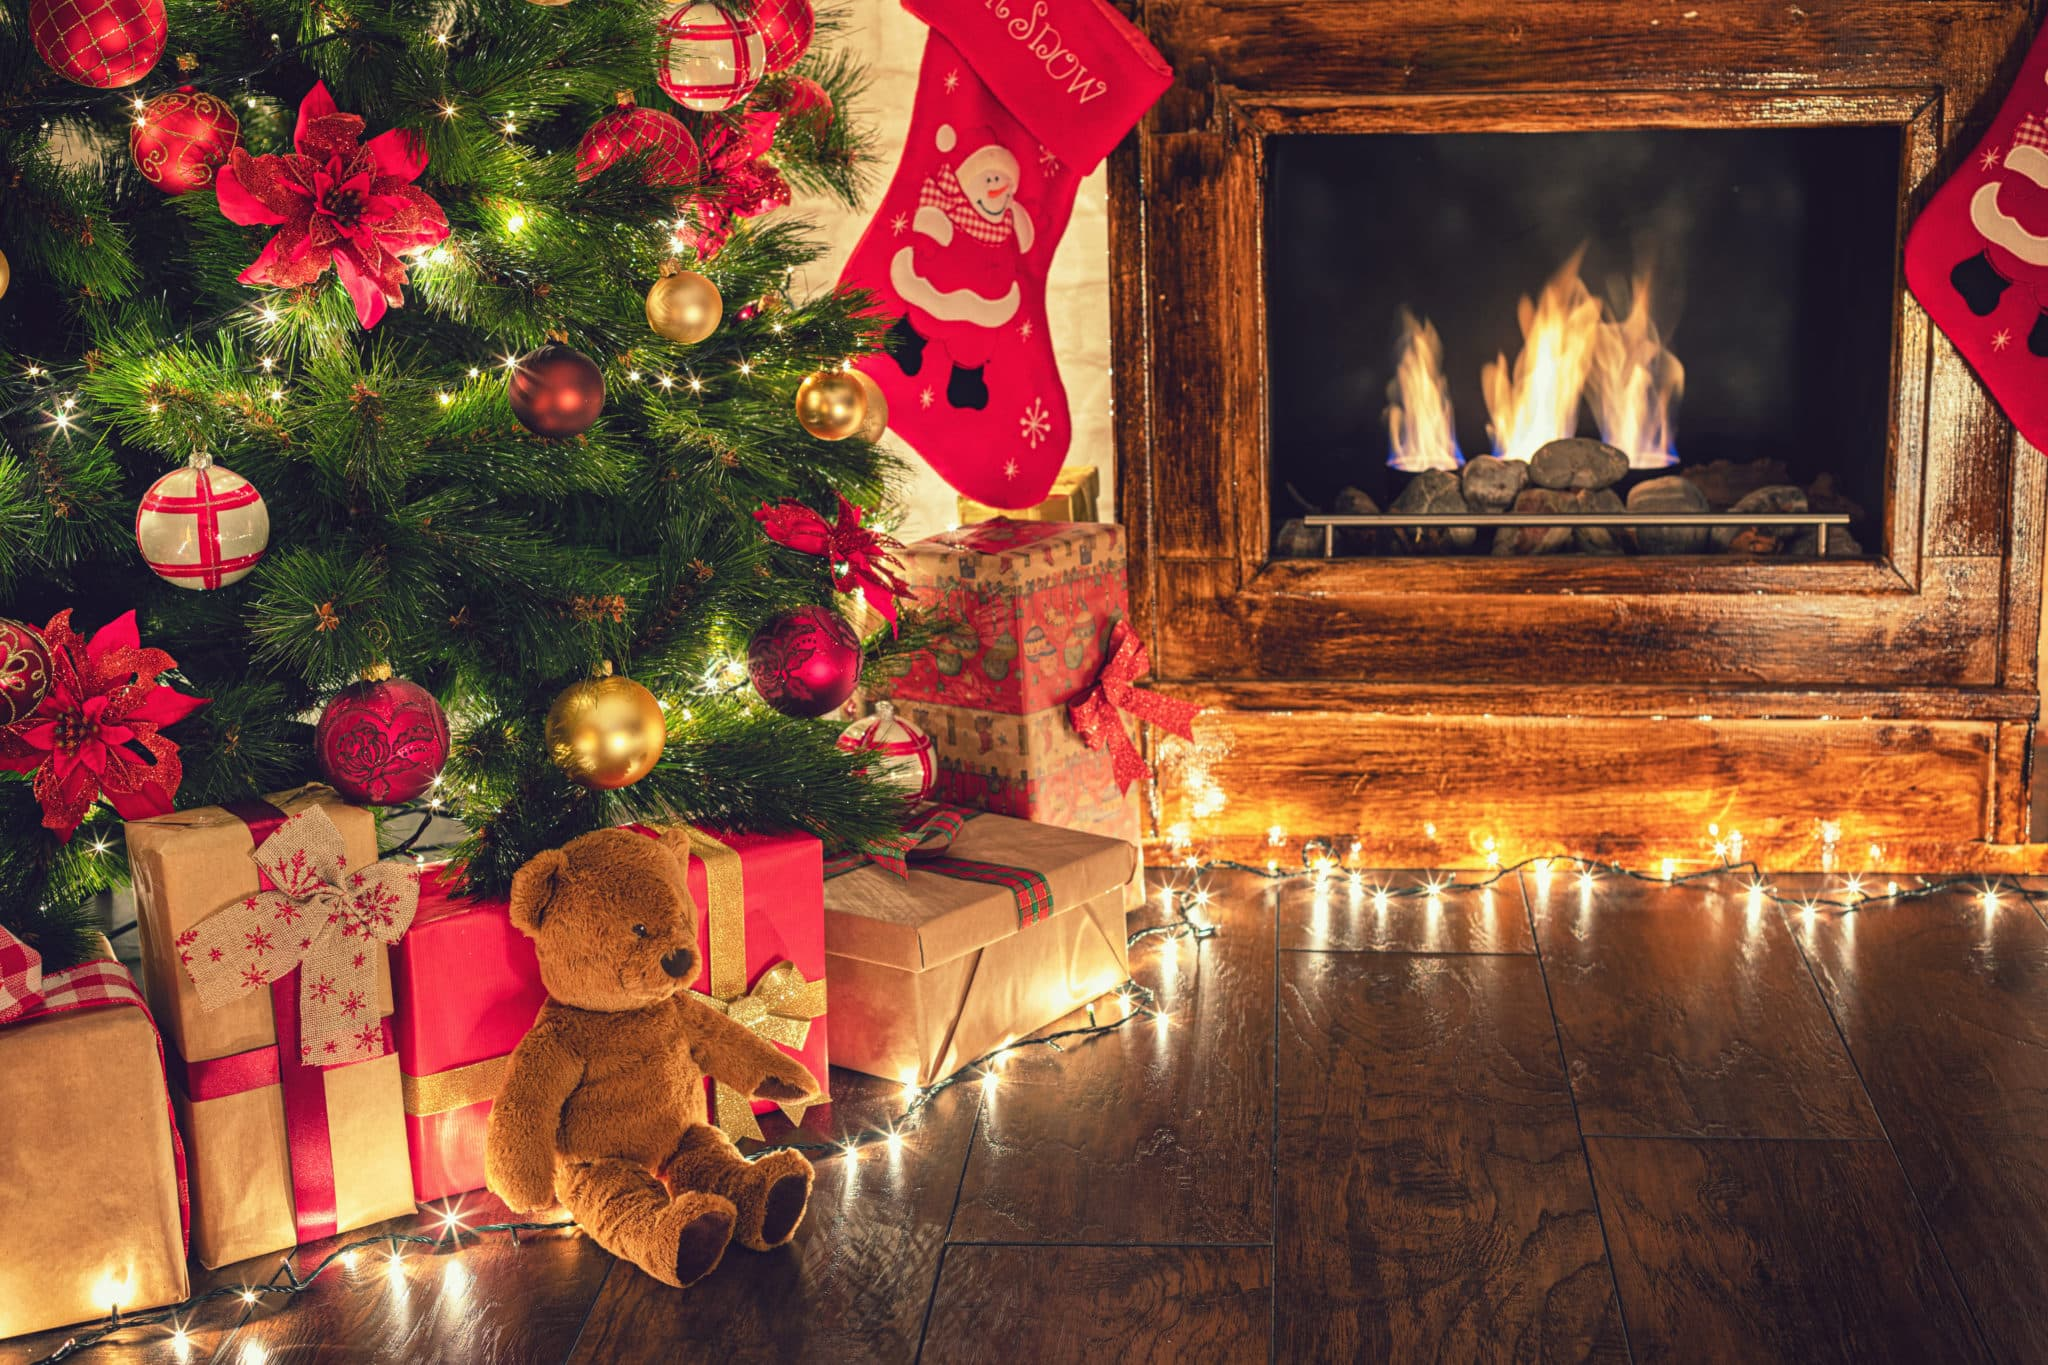 Prevent Christmas Tree Fires With These Safety Tips